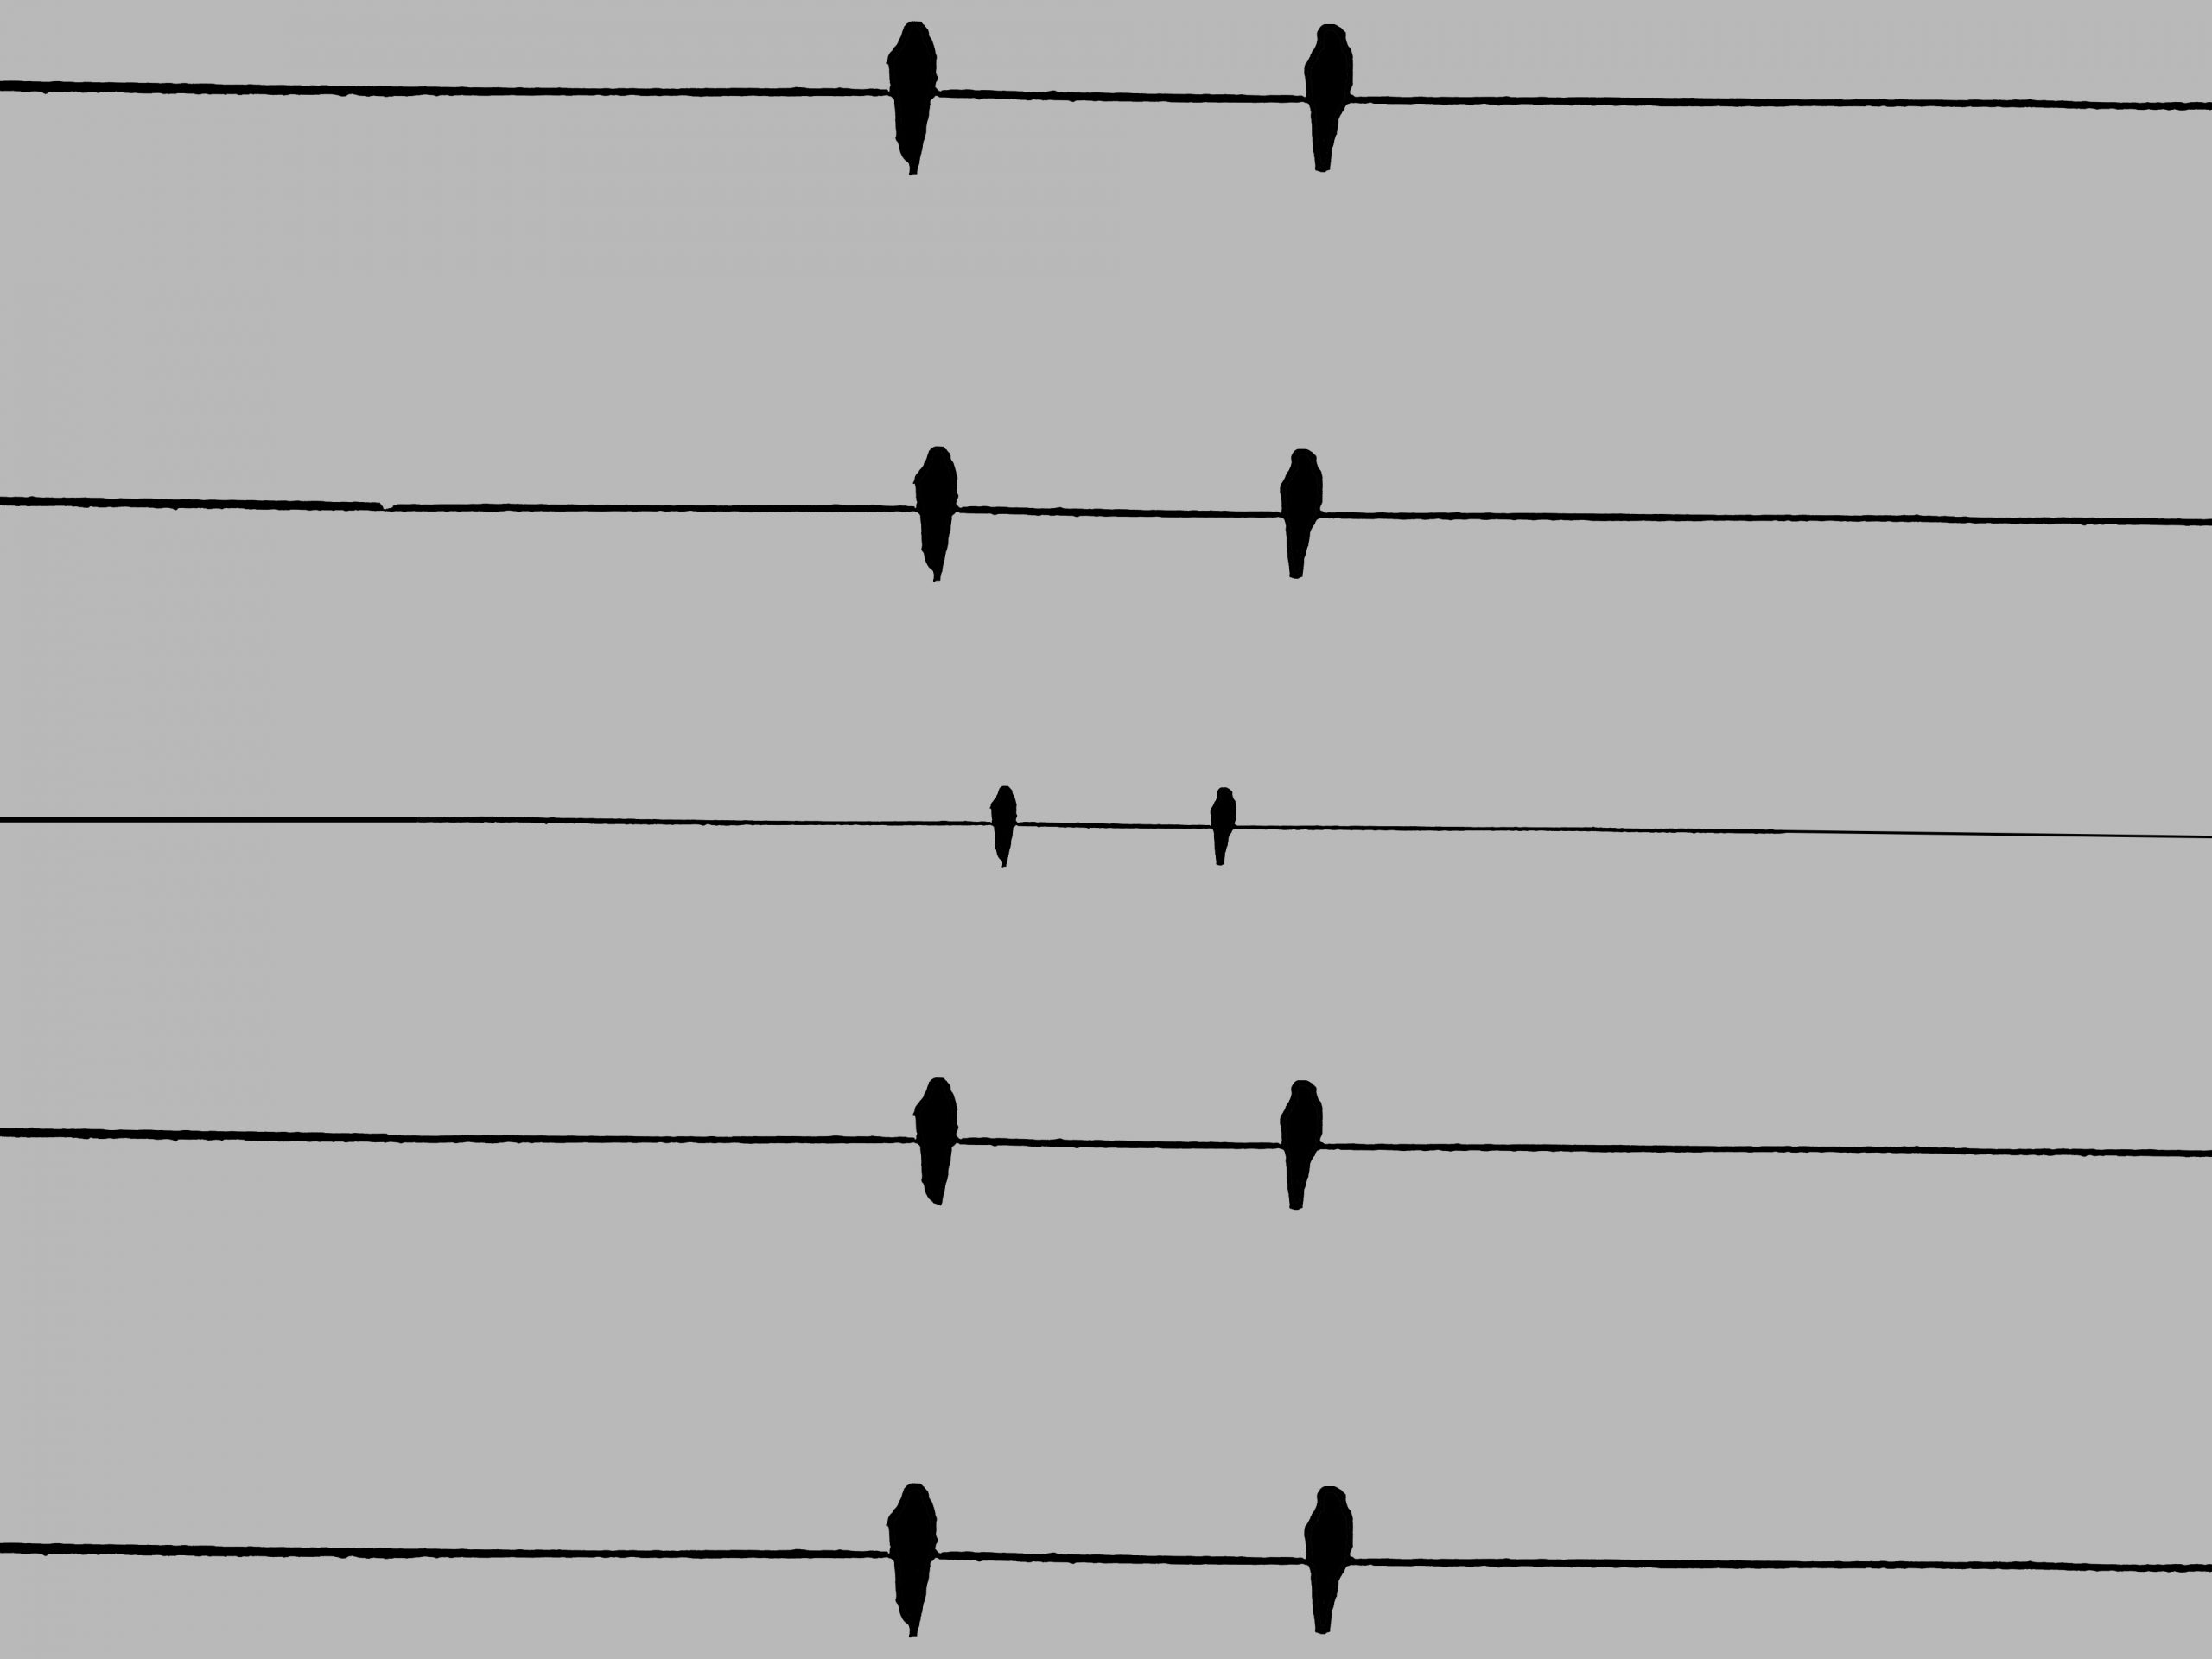 silhouette of birds on lines